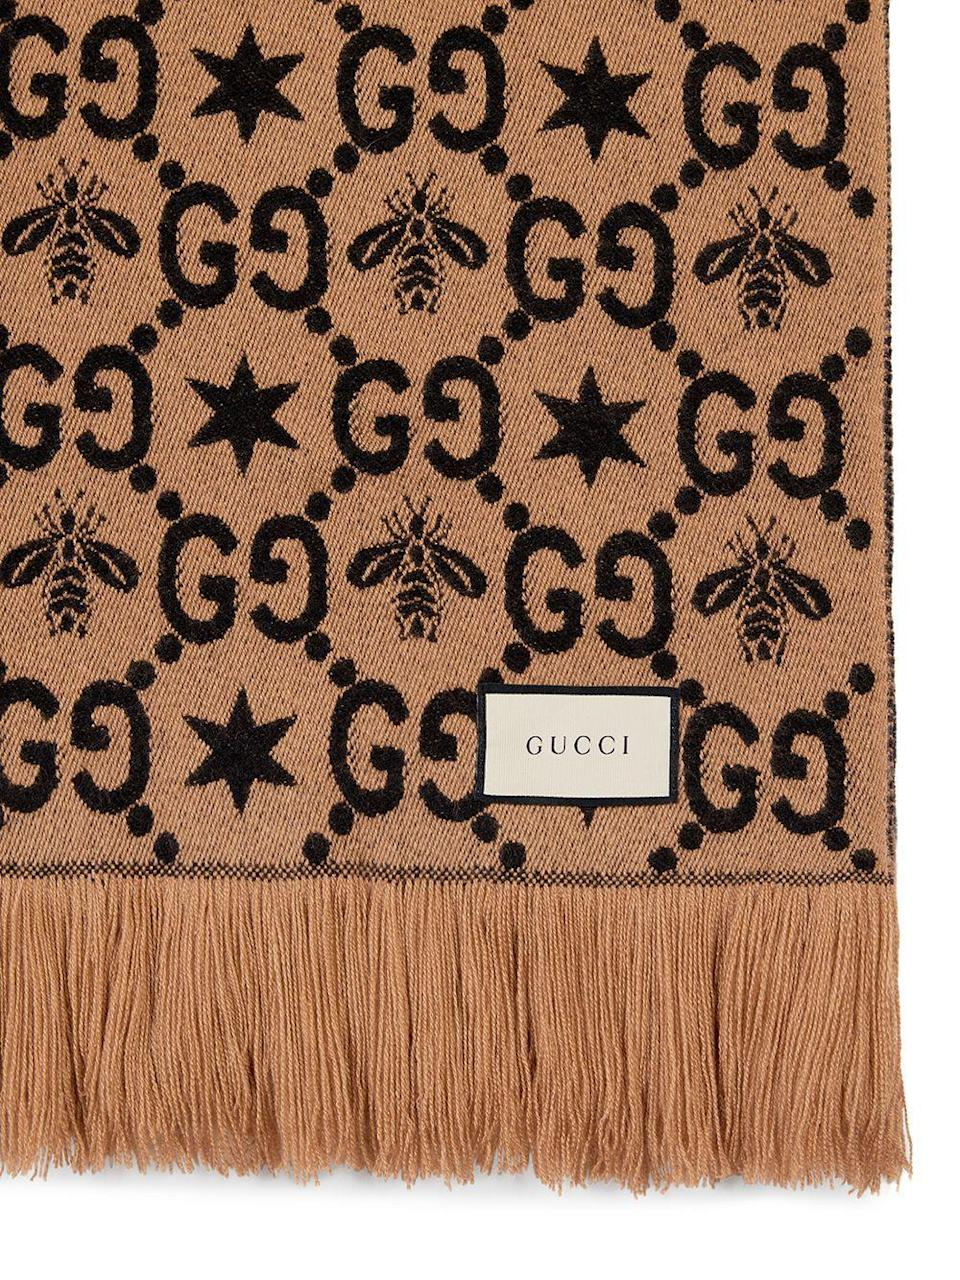 """<p><strong>Gucci</strong></p><p>farfetch.com</p><p><strong>$1100.00</strong></p><p><a href=""""https://go.redirectingat.com?id=74968X1596630&url=https%3A%2F%2Fwww.farfetch.com%2Fshopping%2Fmen%2Fgucci-gg-pattern-throw-blanket-item-14093968.aspx&sref=https%3A%2F%2Fwww.cosmopolitan.com%2Flifestyle%2Fg32613217%2Fbest-throw-blankets%2F"""" rel=""""nofollow noopener"""" target=""""_blank"""" data-ylk=""""slk:Shop Now"""" class=""""link rapid-noclick-resp"""">Shop Now</a></p><p>If you're a big Gucci stan, get you this GG one to complete your living room.</p>"""